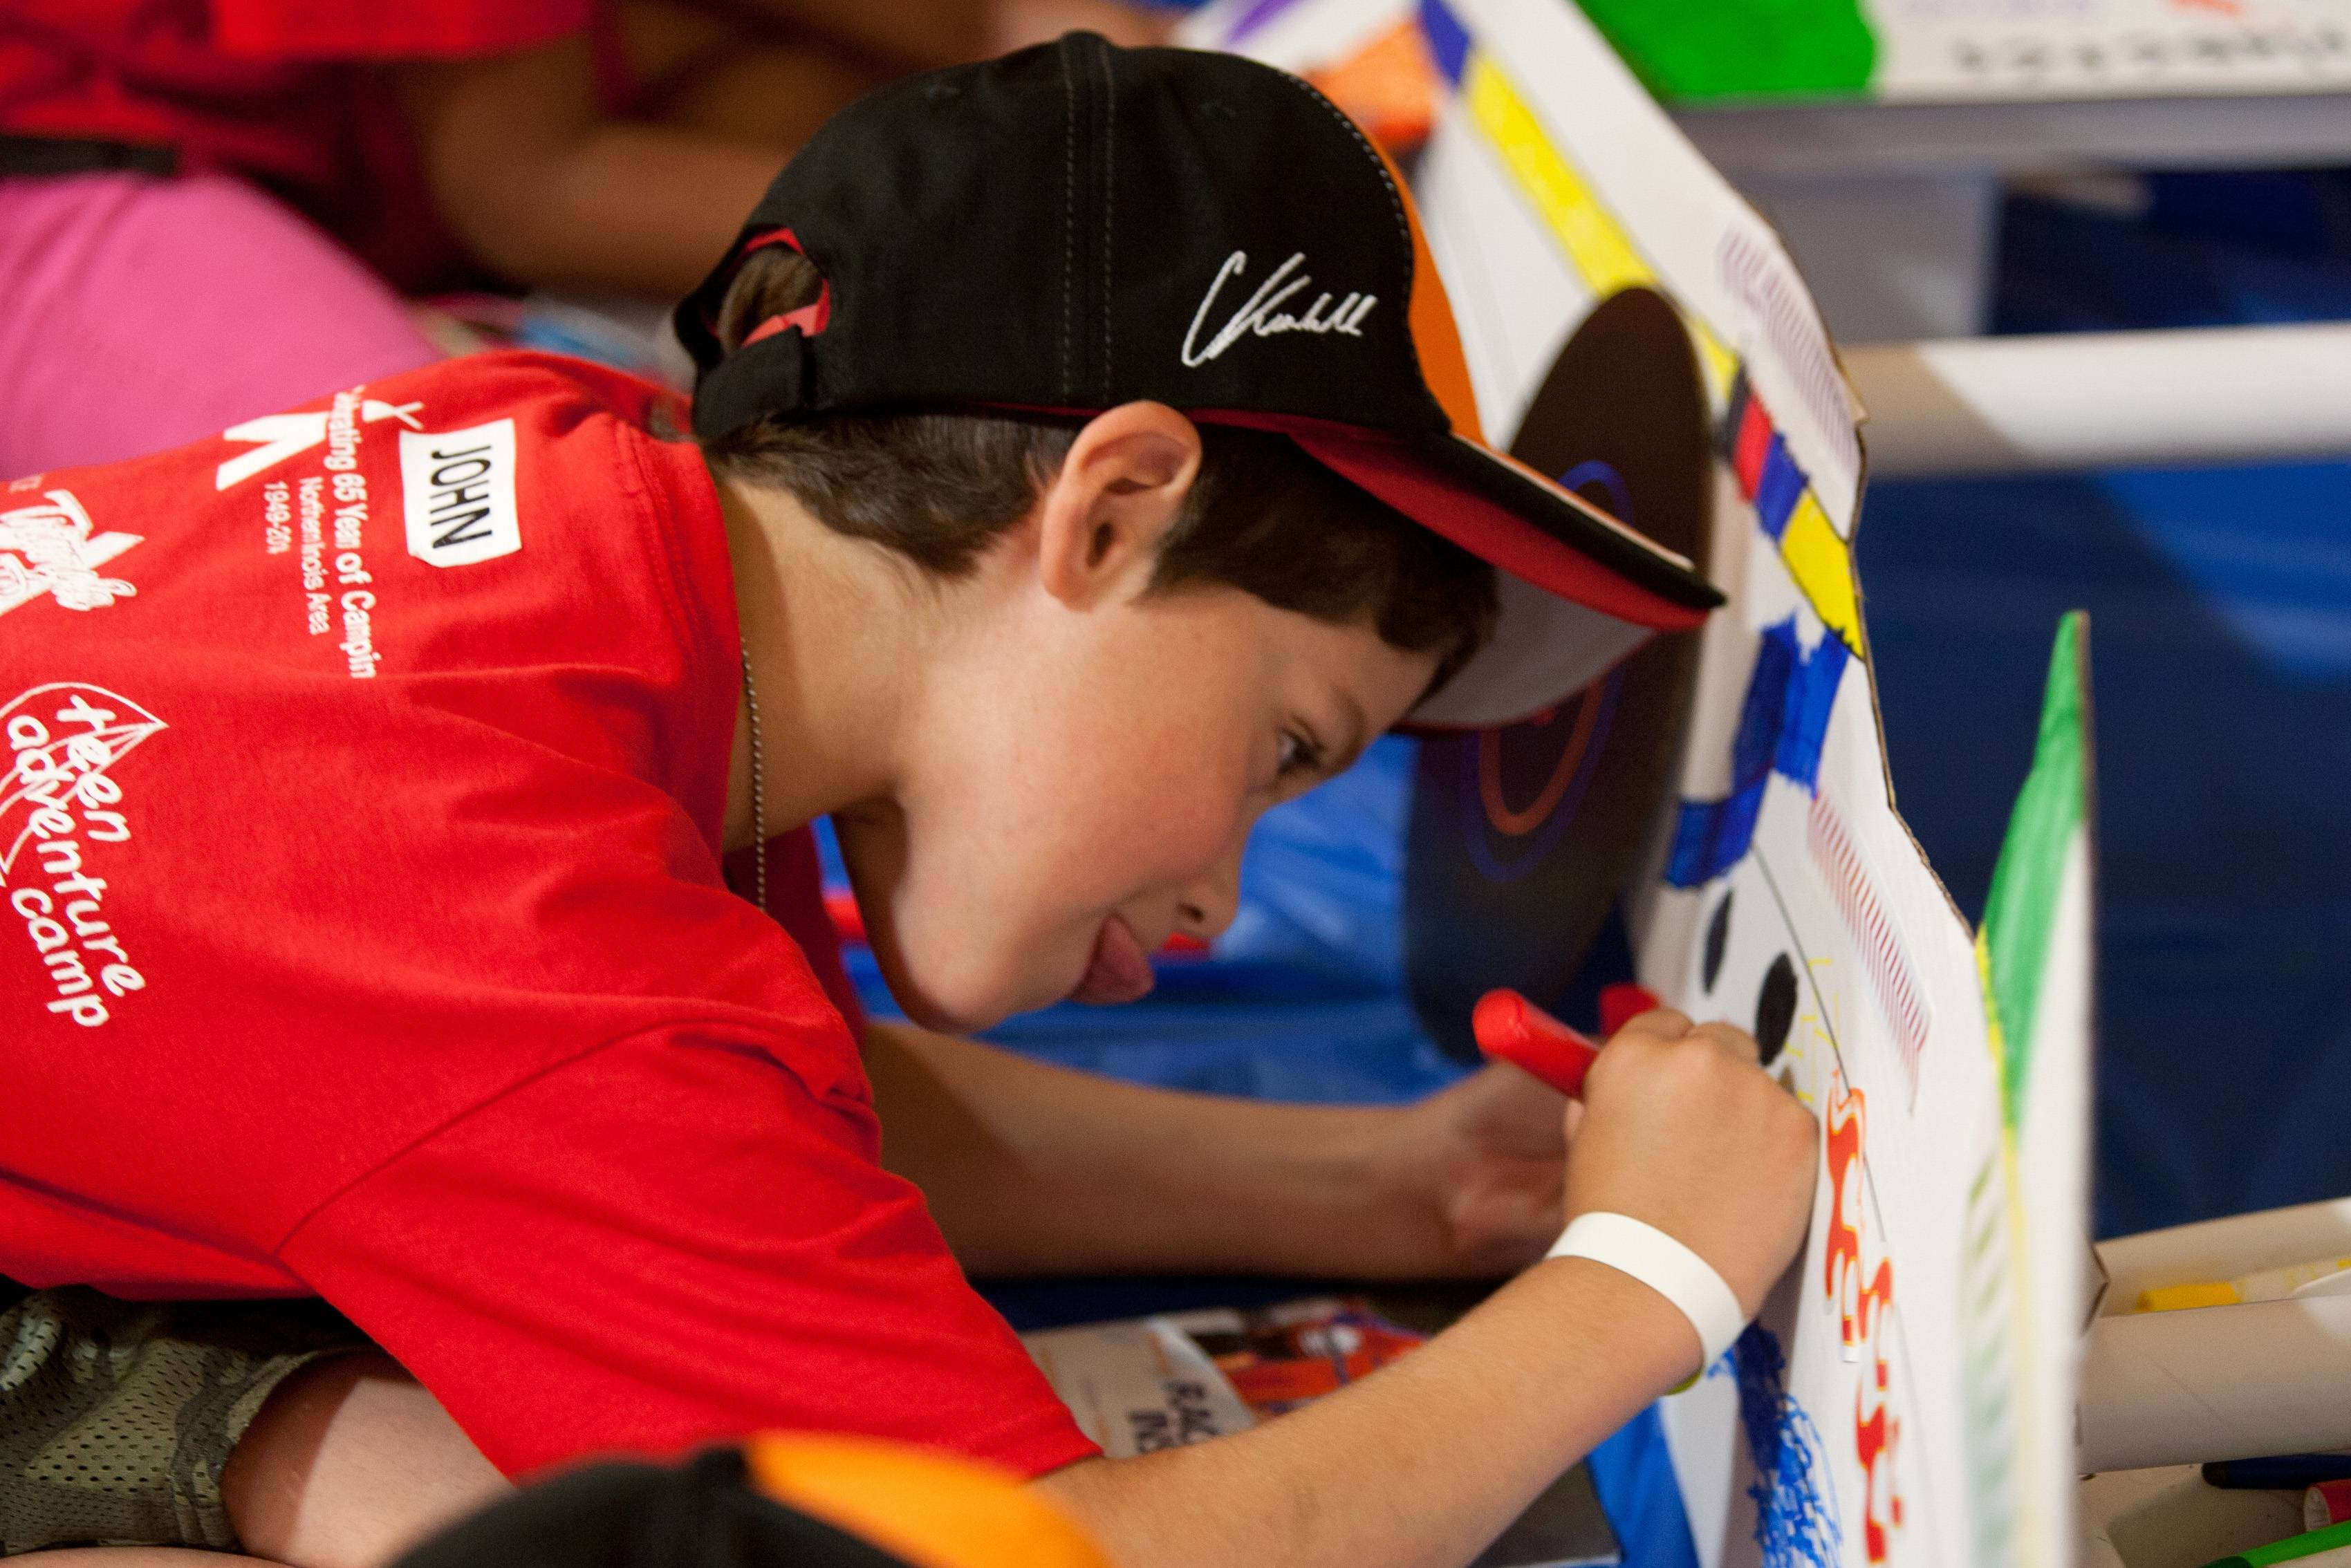 John Beaudette, 7, works on coloring a cardboard model of Charlie Kimball's 83 Indy car.